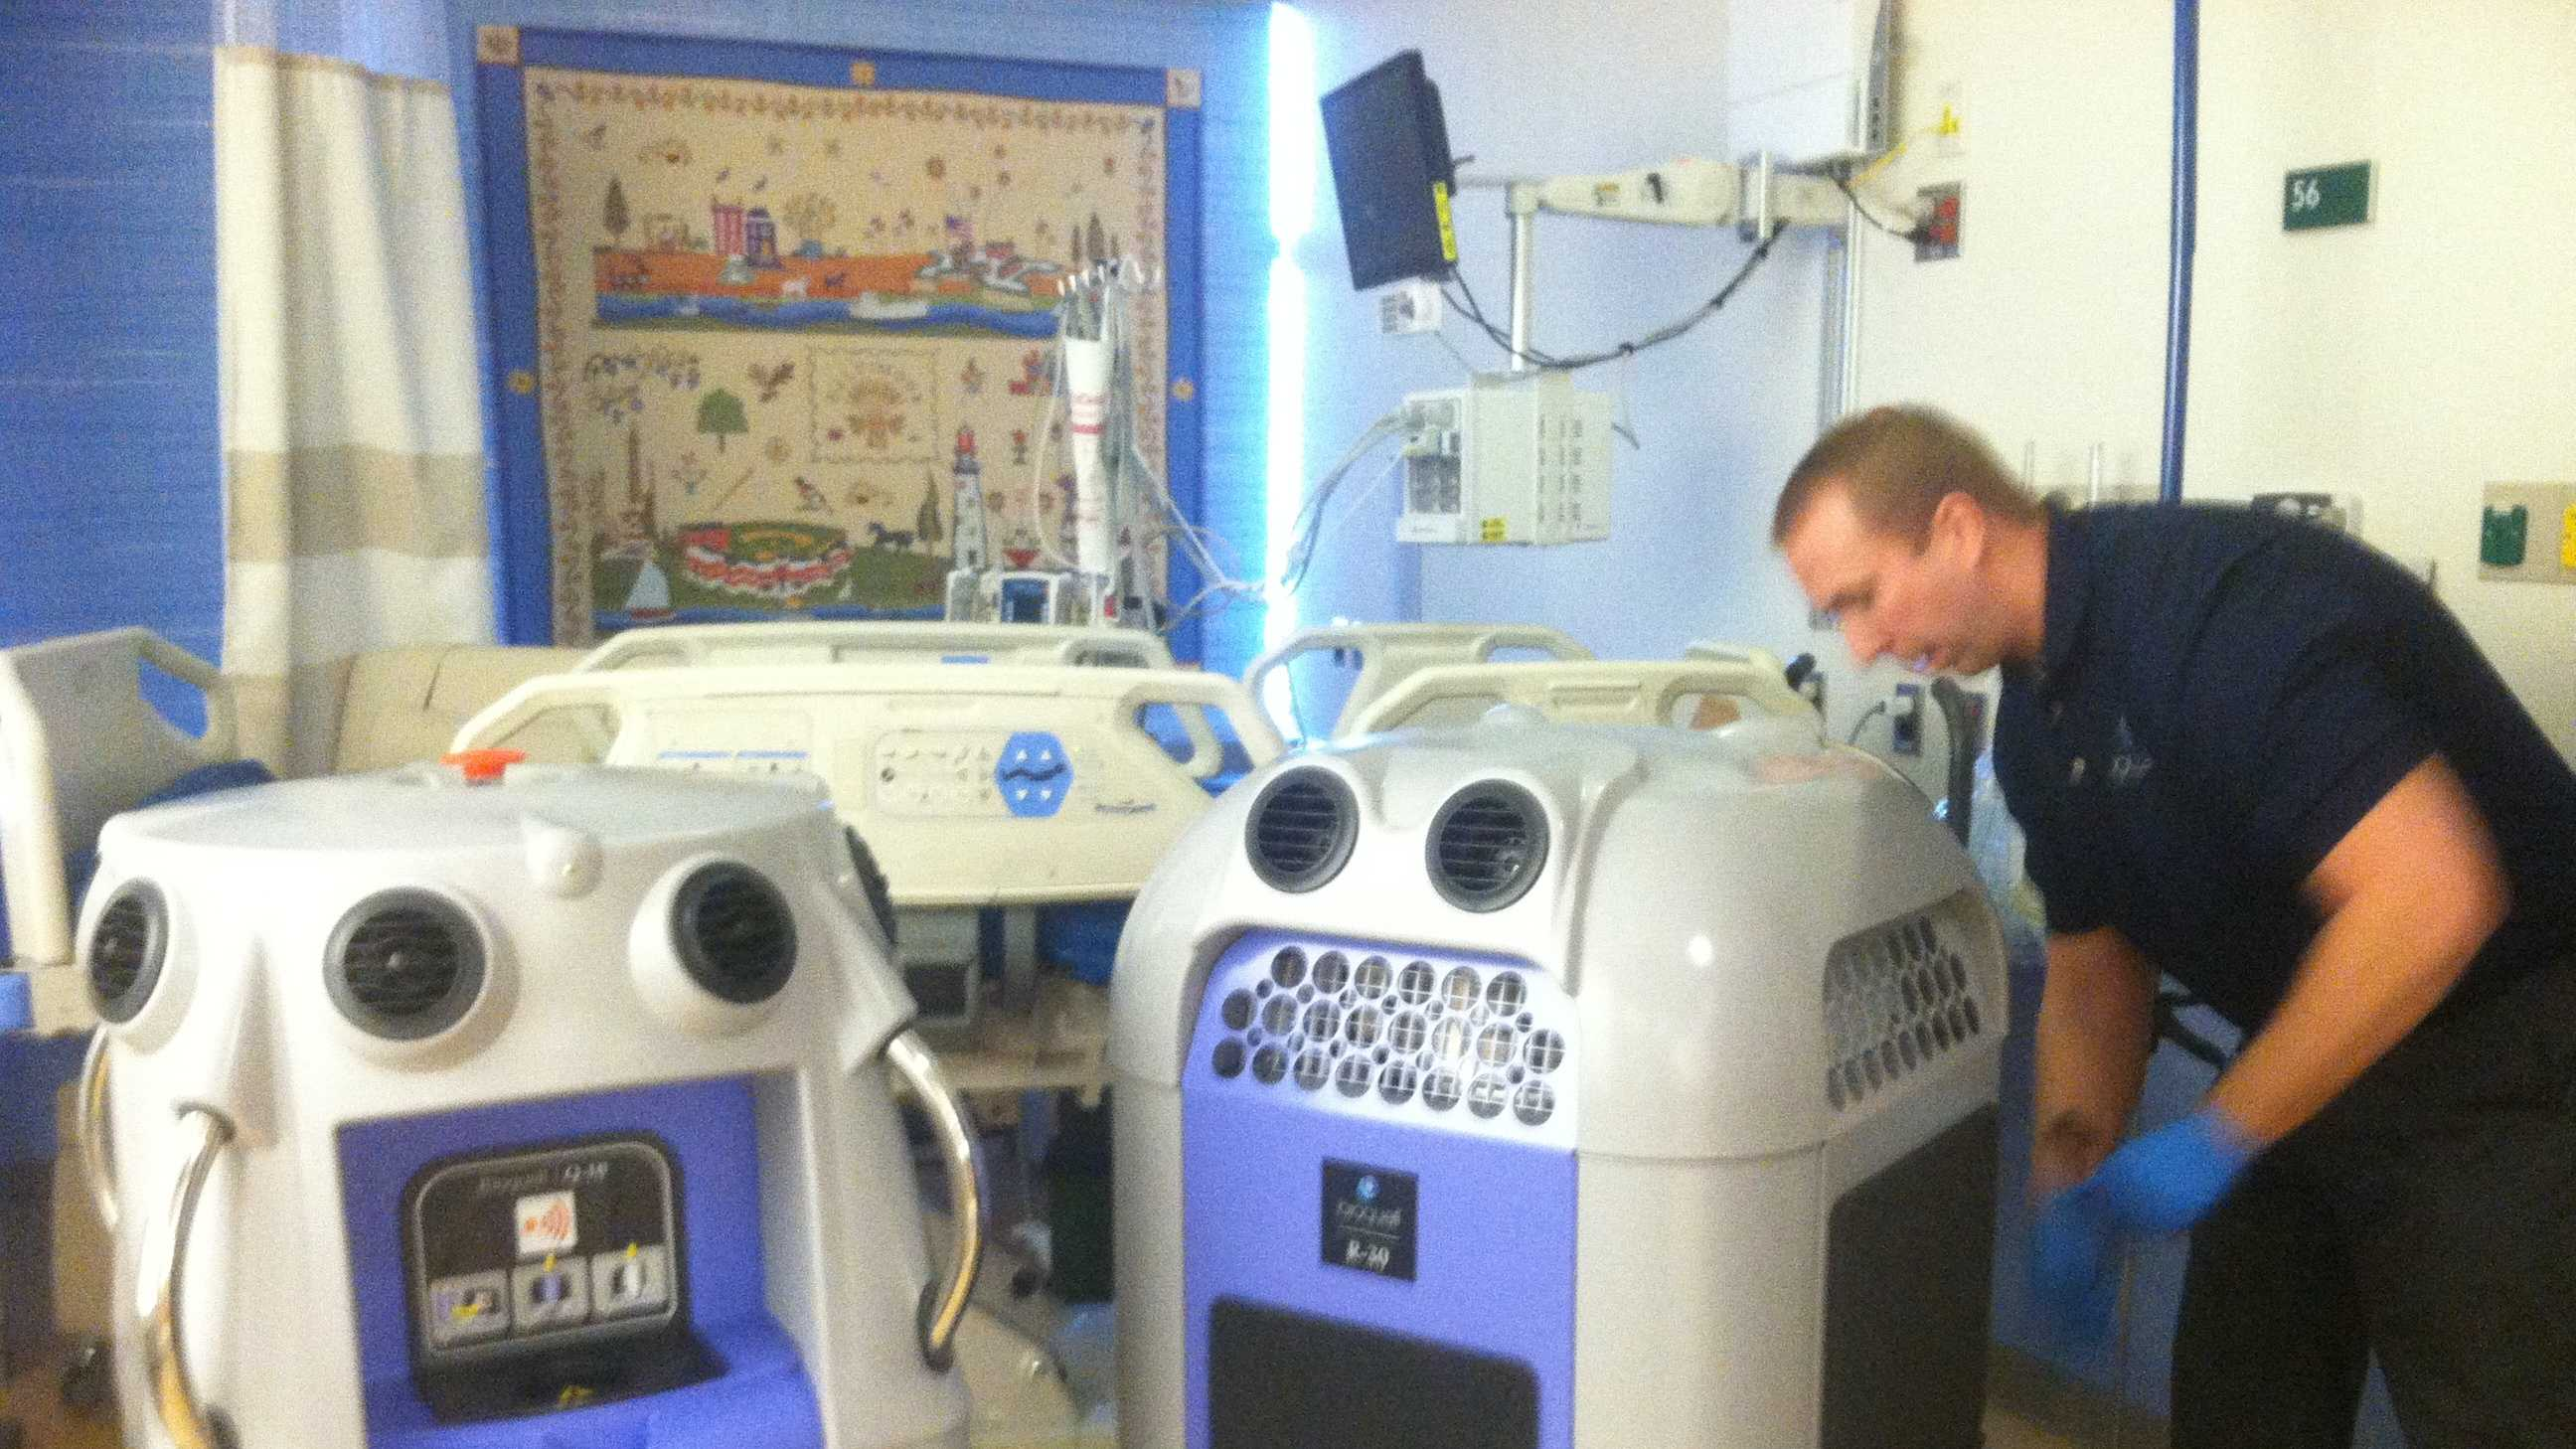 A technician sets up the Bioquell Q10 robots for the cleaning.